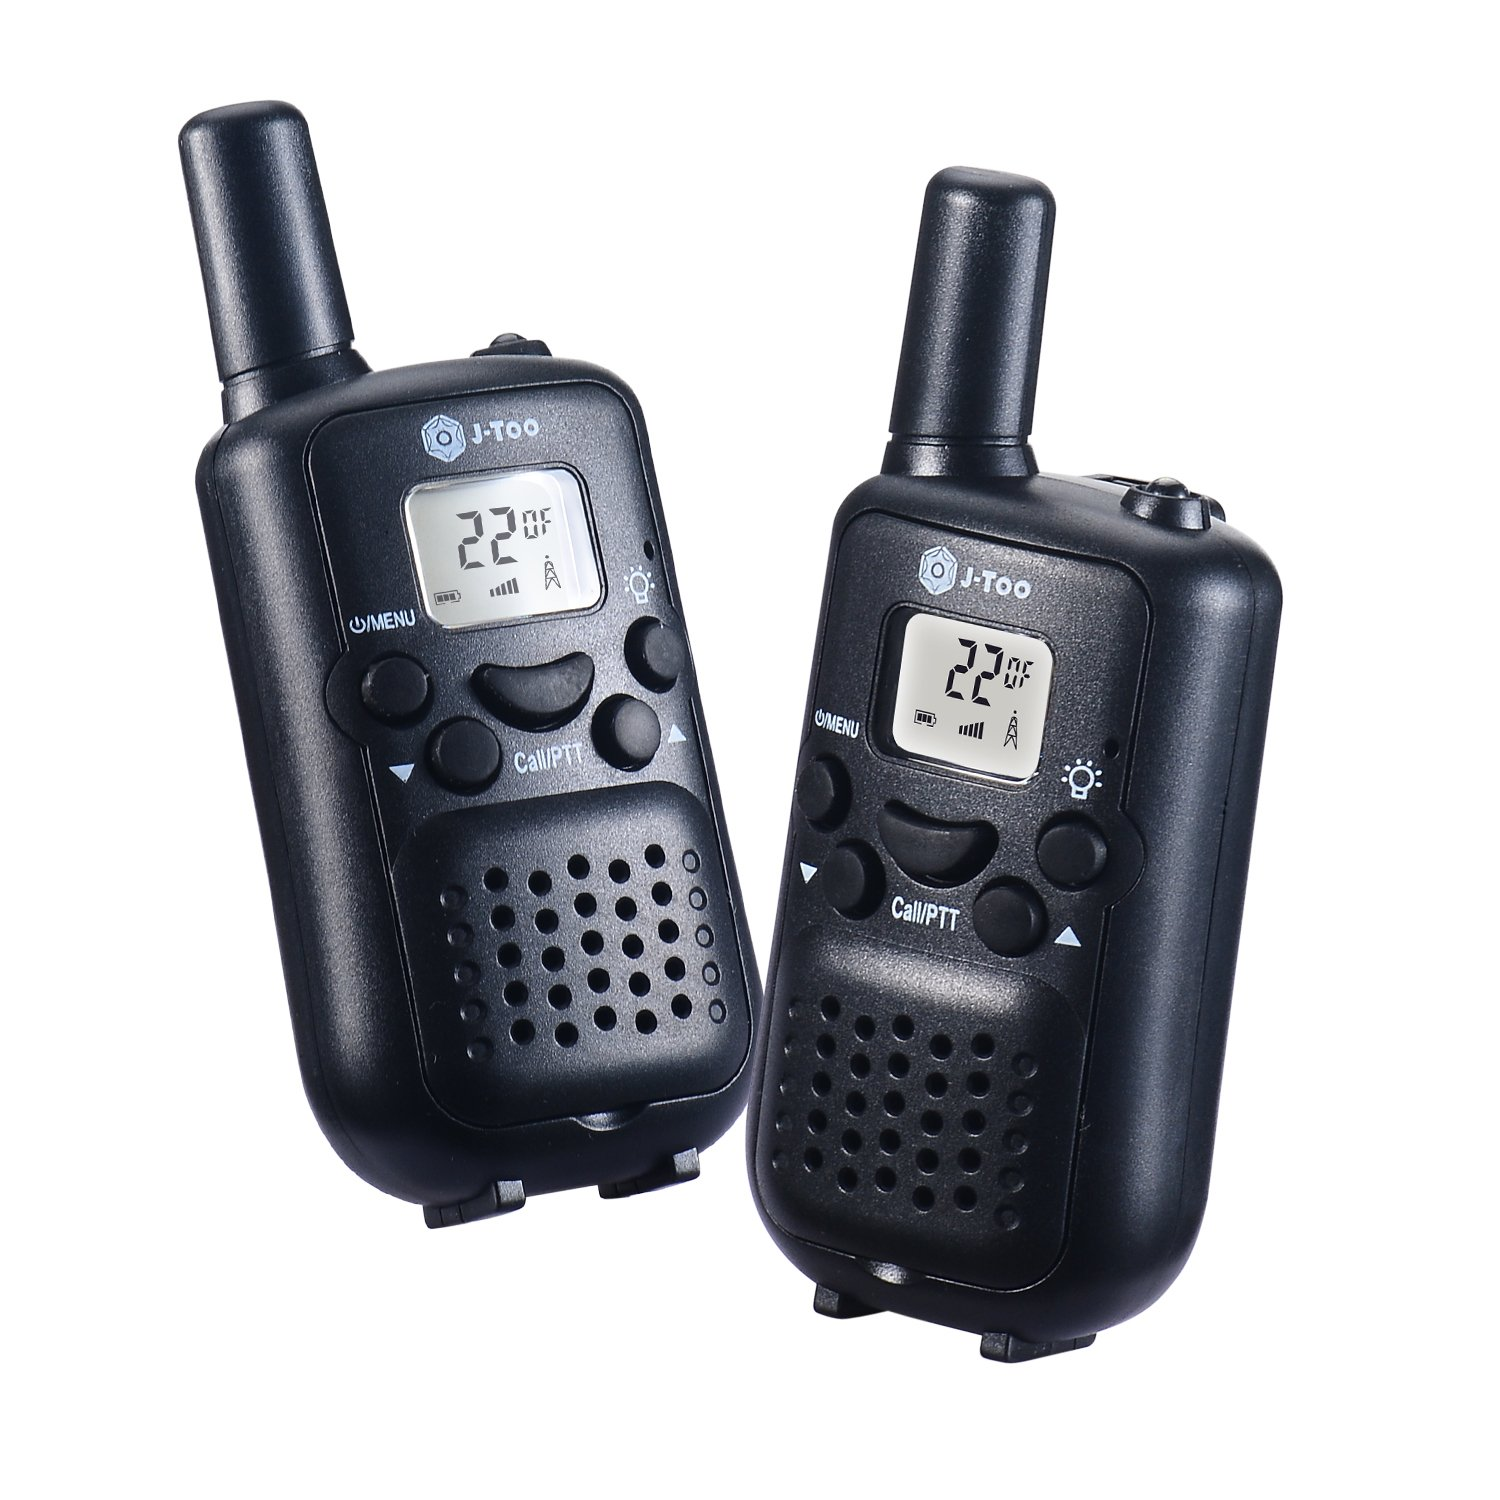 Walkie talkies for kids J-TOO Easy to use 22 Channel FRS/GMRS Two Way Radio 5 Mile Rang 2 Pack (Black)